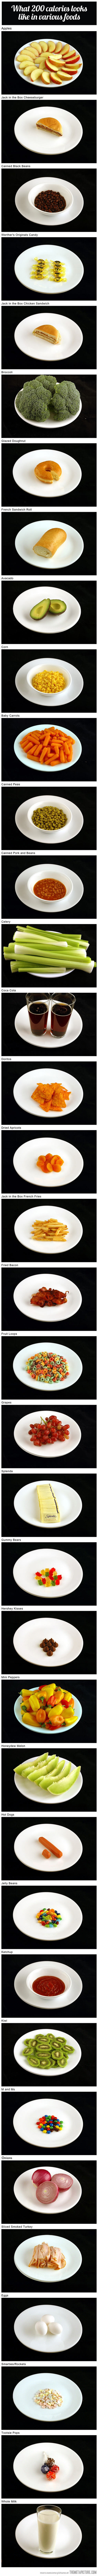 calories-visualized-via-food